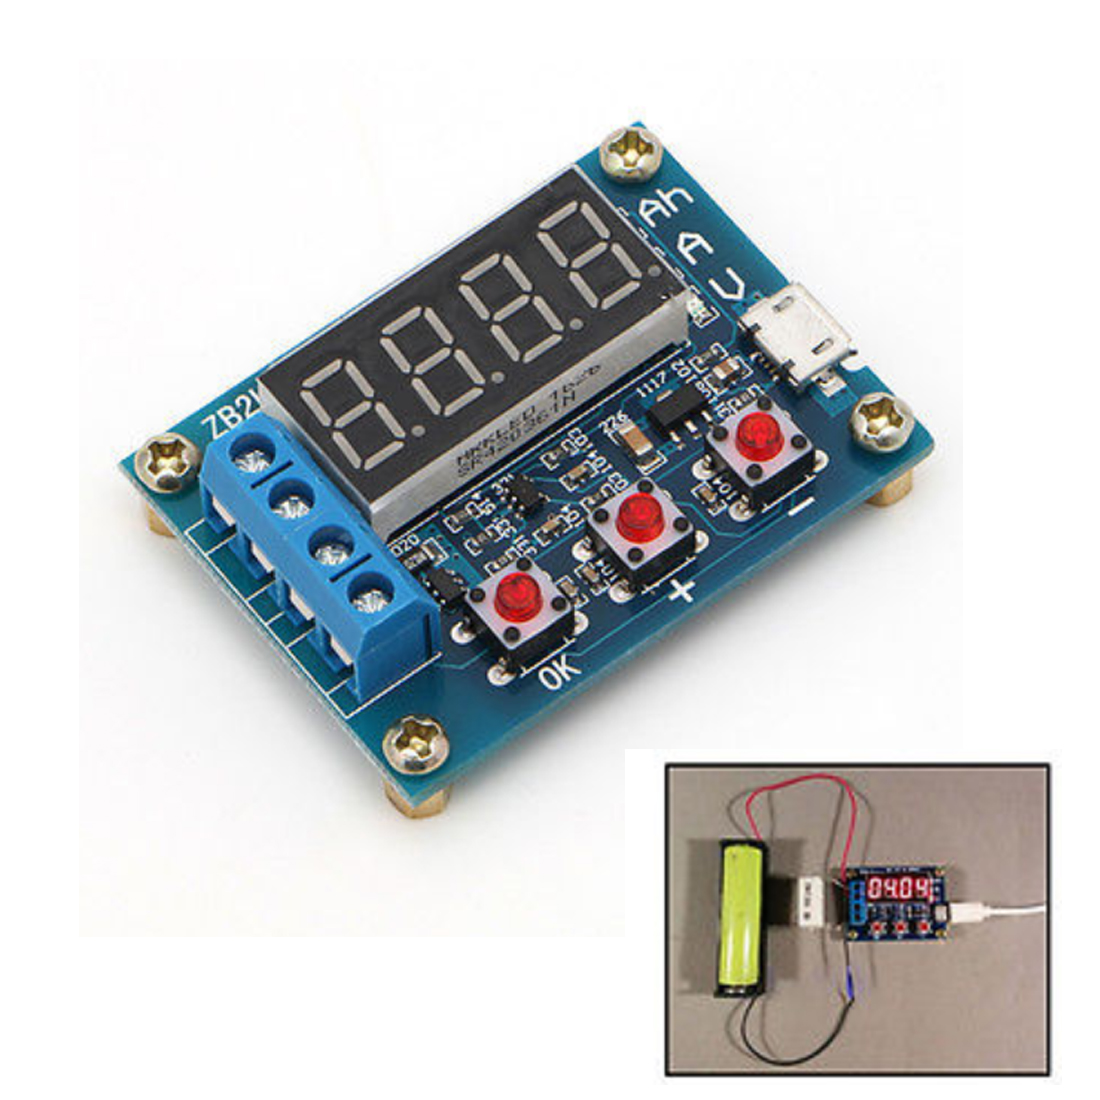 Hot 1.2v 12v 18650 Li-ion Lithium Battery Capacity Tester + Resistance Lead-acid Battery Capacity Meter Discharge Tester battery capacity tester resistance testing mobile power lithium lead acid battery can be 18650 serial line 20w page 2